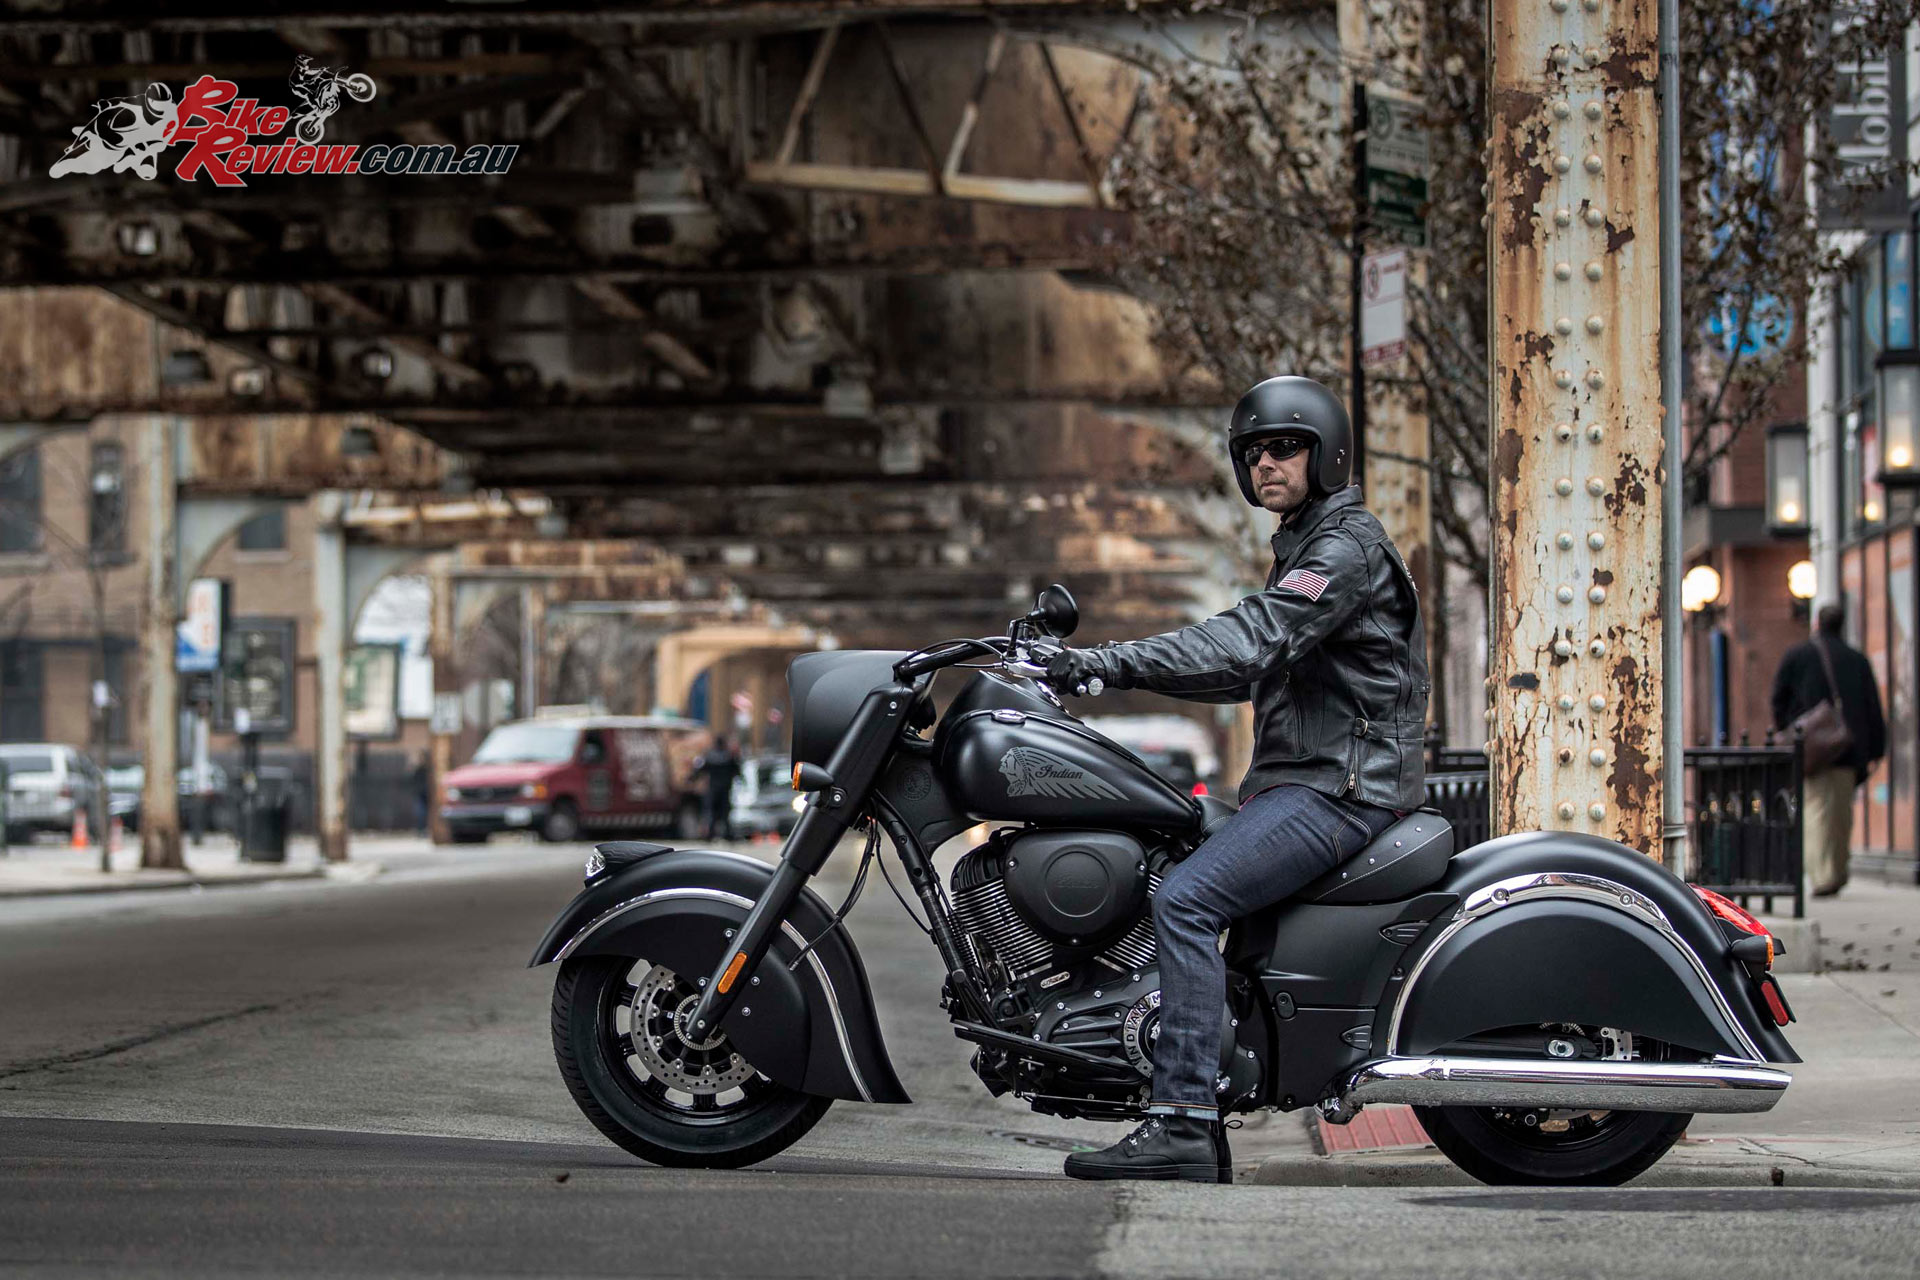 2017 Indian Motorcycle Model Range Revealed Bike Review